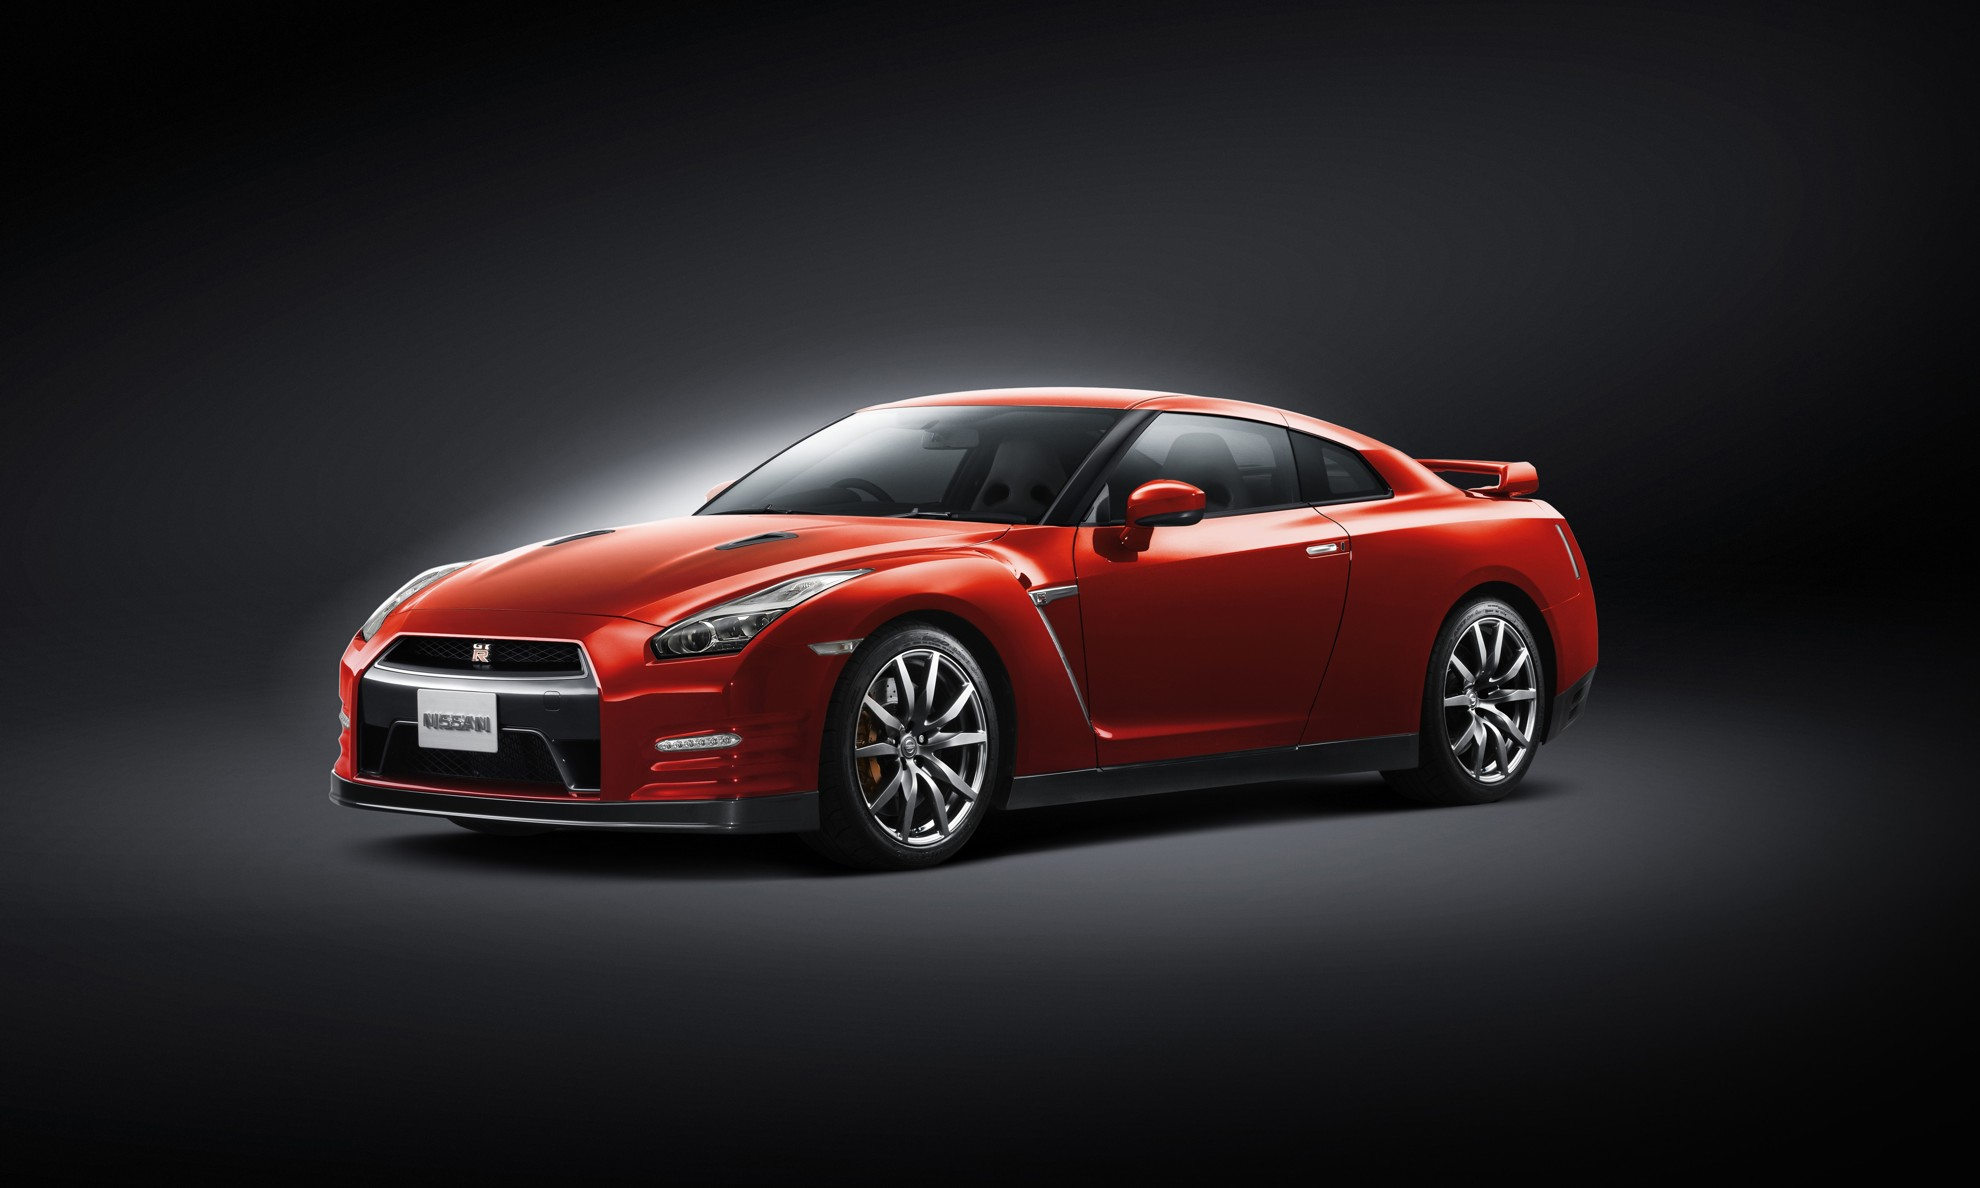 2014 Nissan GT-R Red